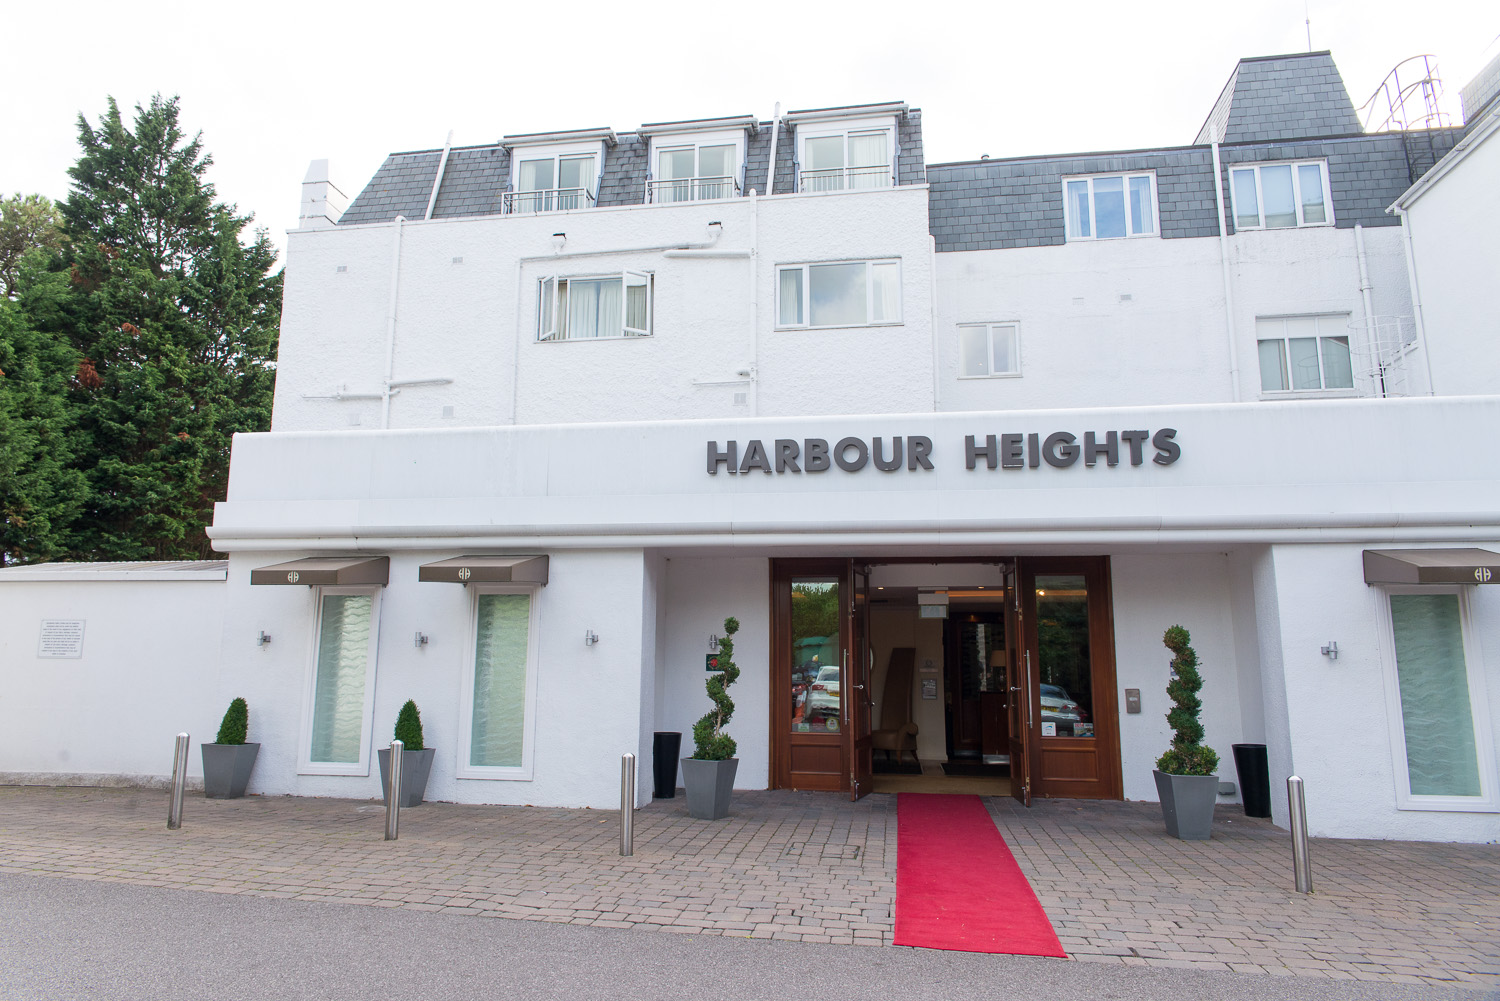 Bed And Breakfast Poole Harbour Weekend In Sandbanks At Harbour Heights Hotel Mondomulia